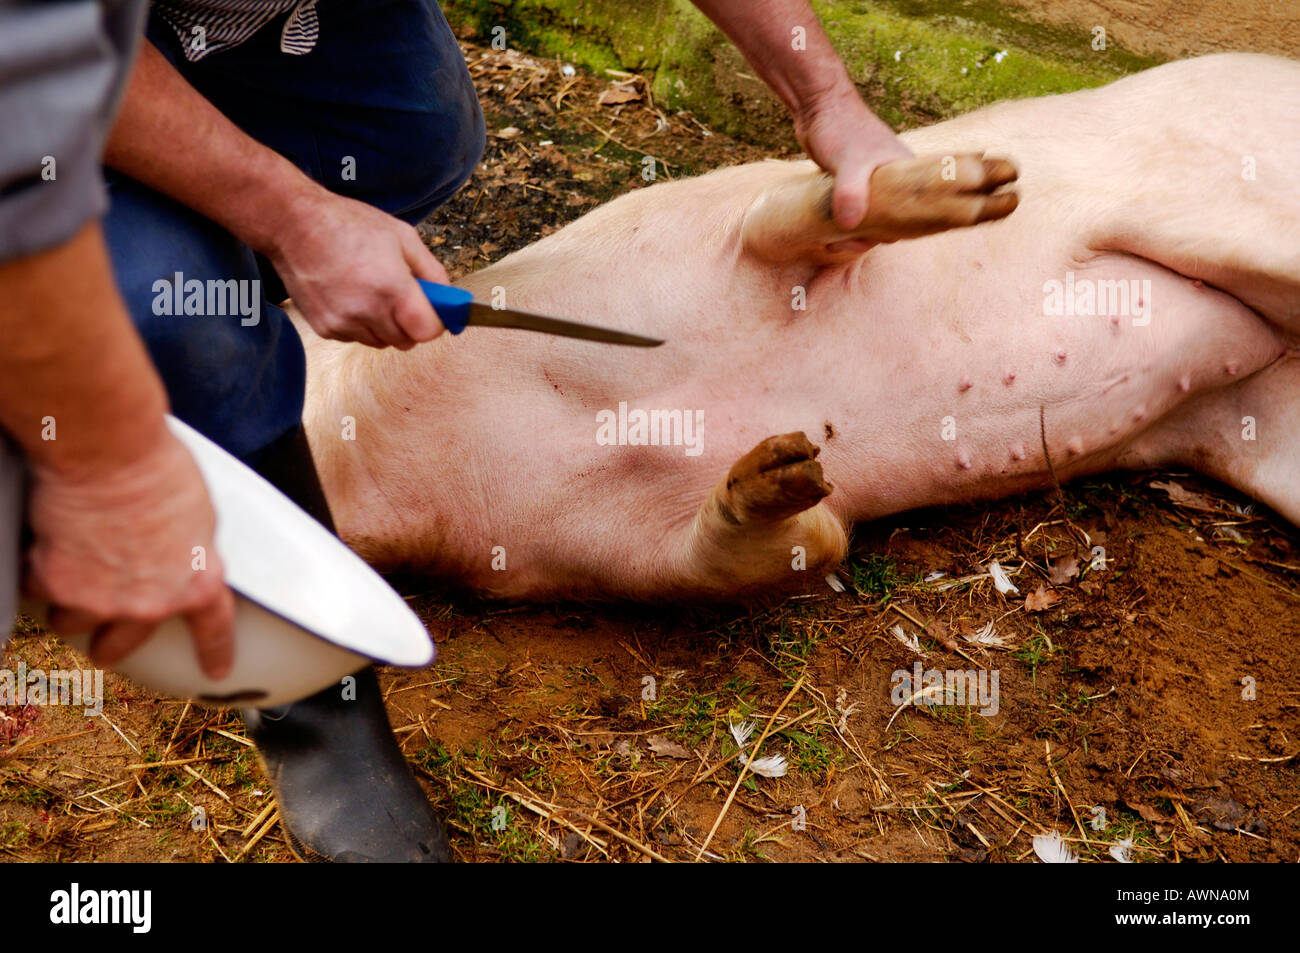 Home butchering, draining the blood from an anesthetised pig, Eckental, Middle Franconia, Bavaria, Germany, Europe - Stock Image